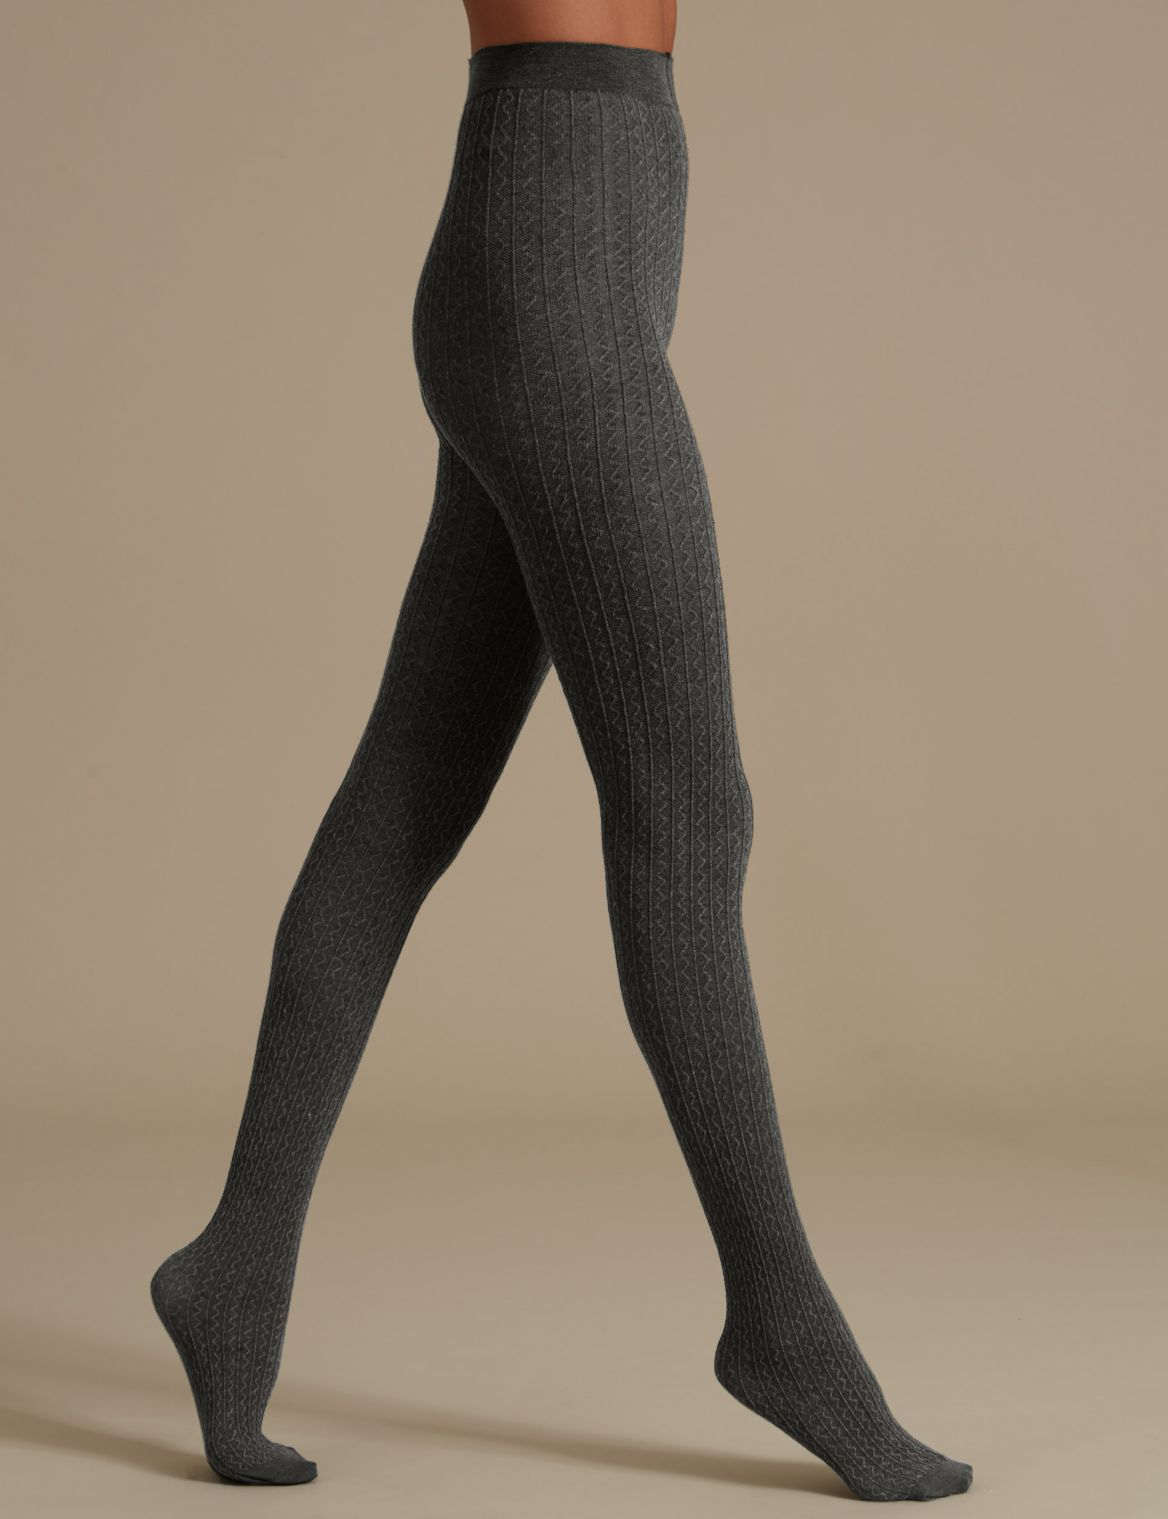 100 Denier Heatgen™ Opaque Tights dark grey